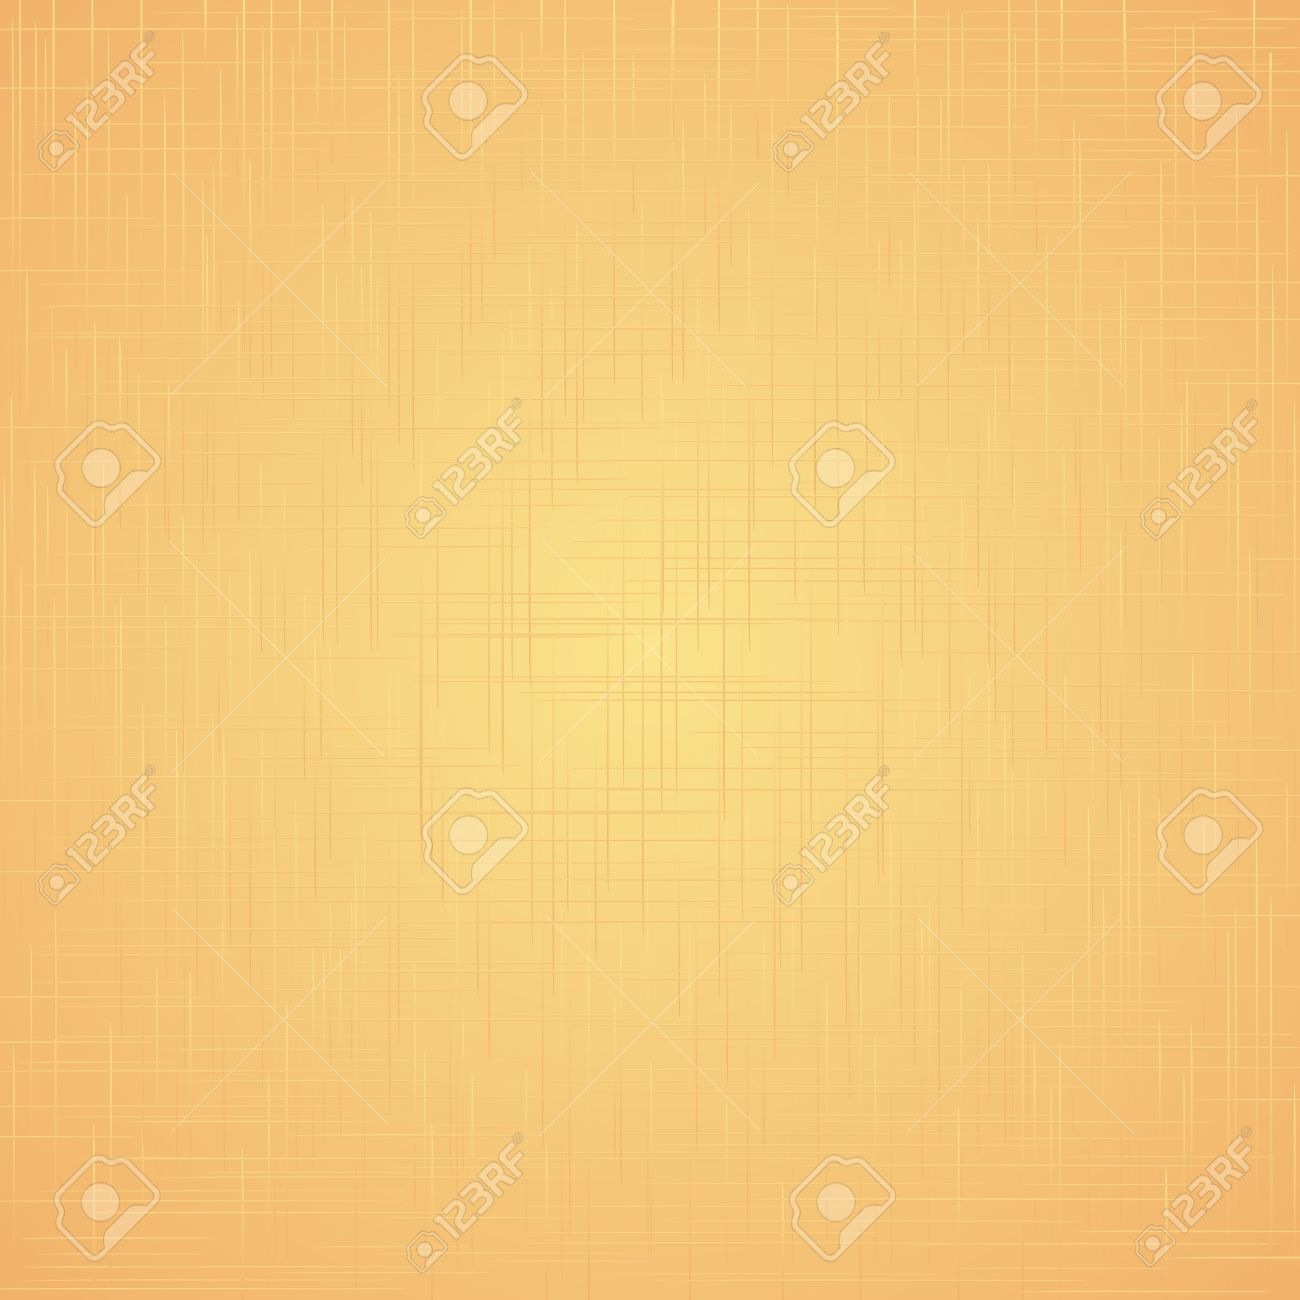 Light Brown Vintage Background With Thin Lines Stock Vector